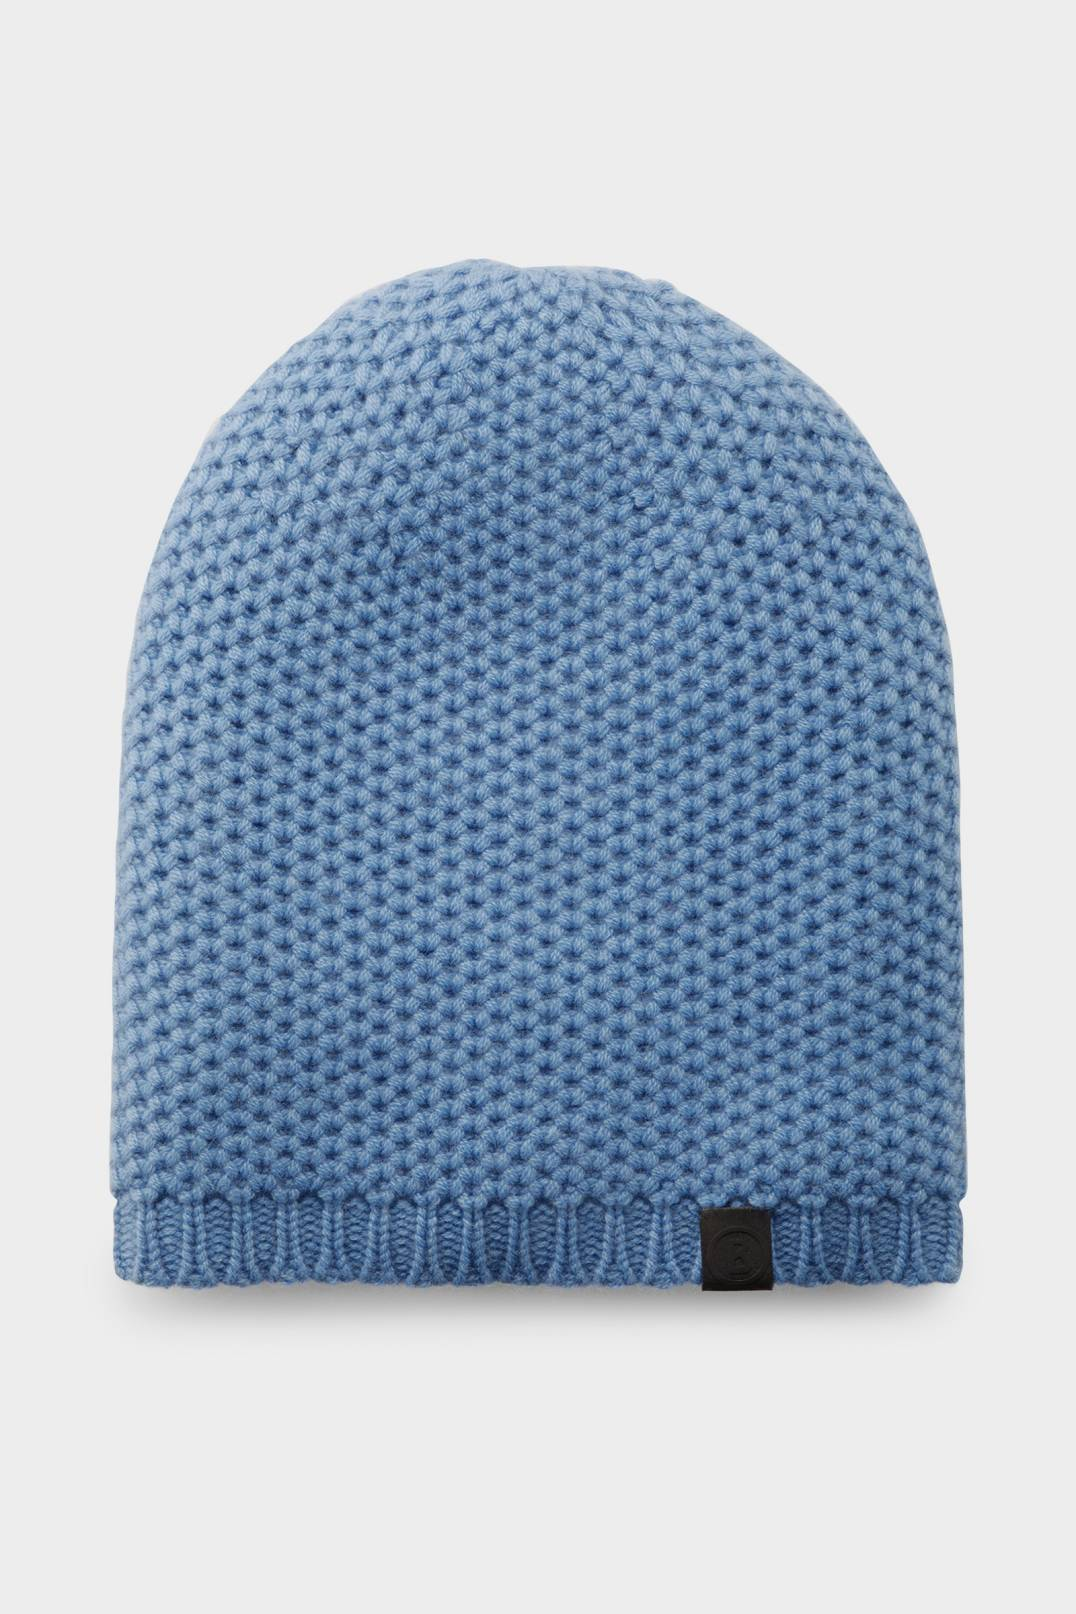 85f4d230230 Bogner Lorena Knitted hat in Pastel blue for Women